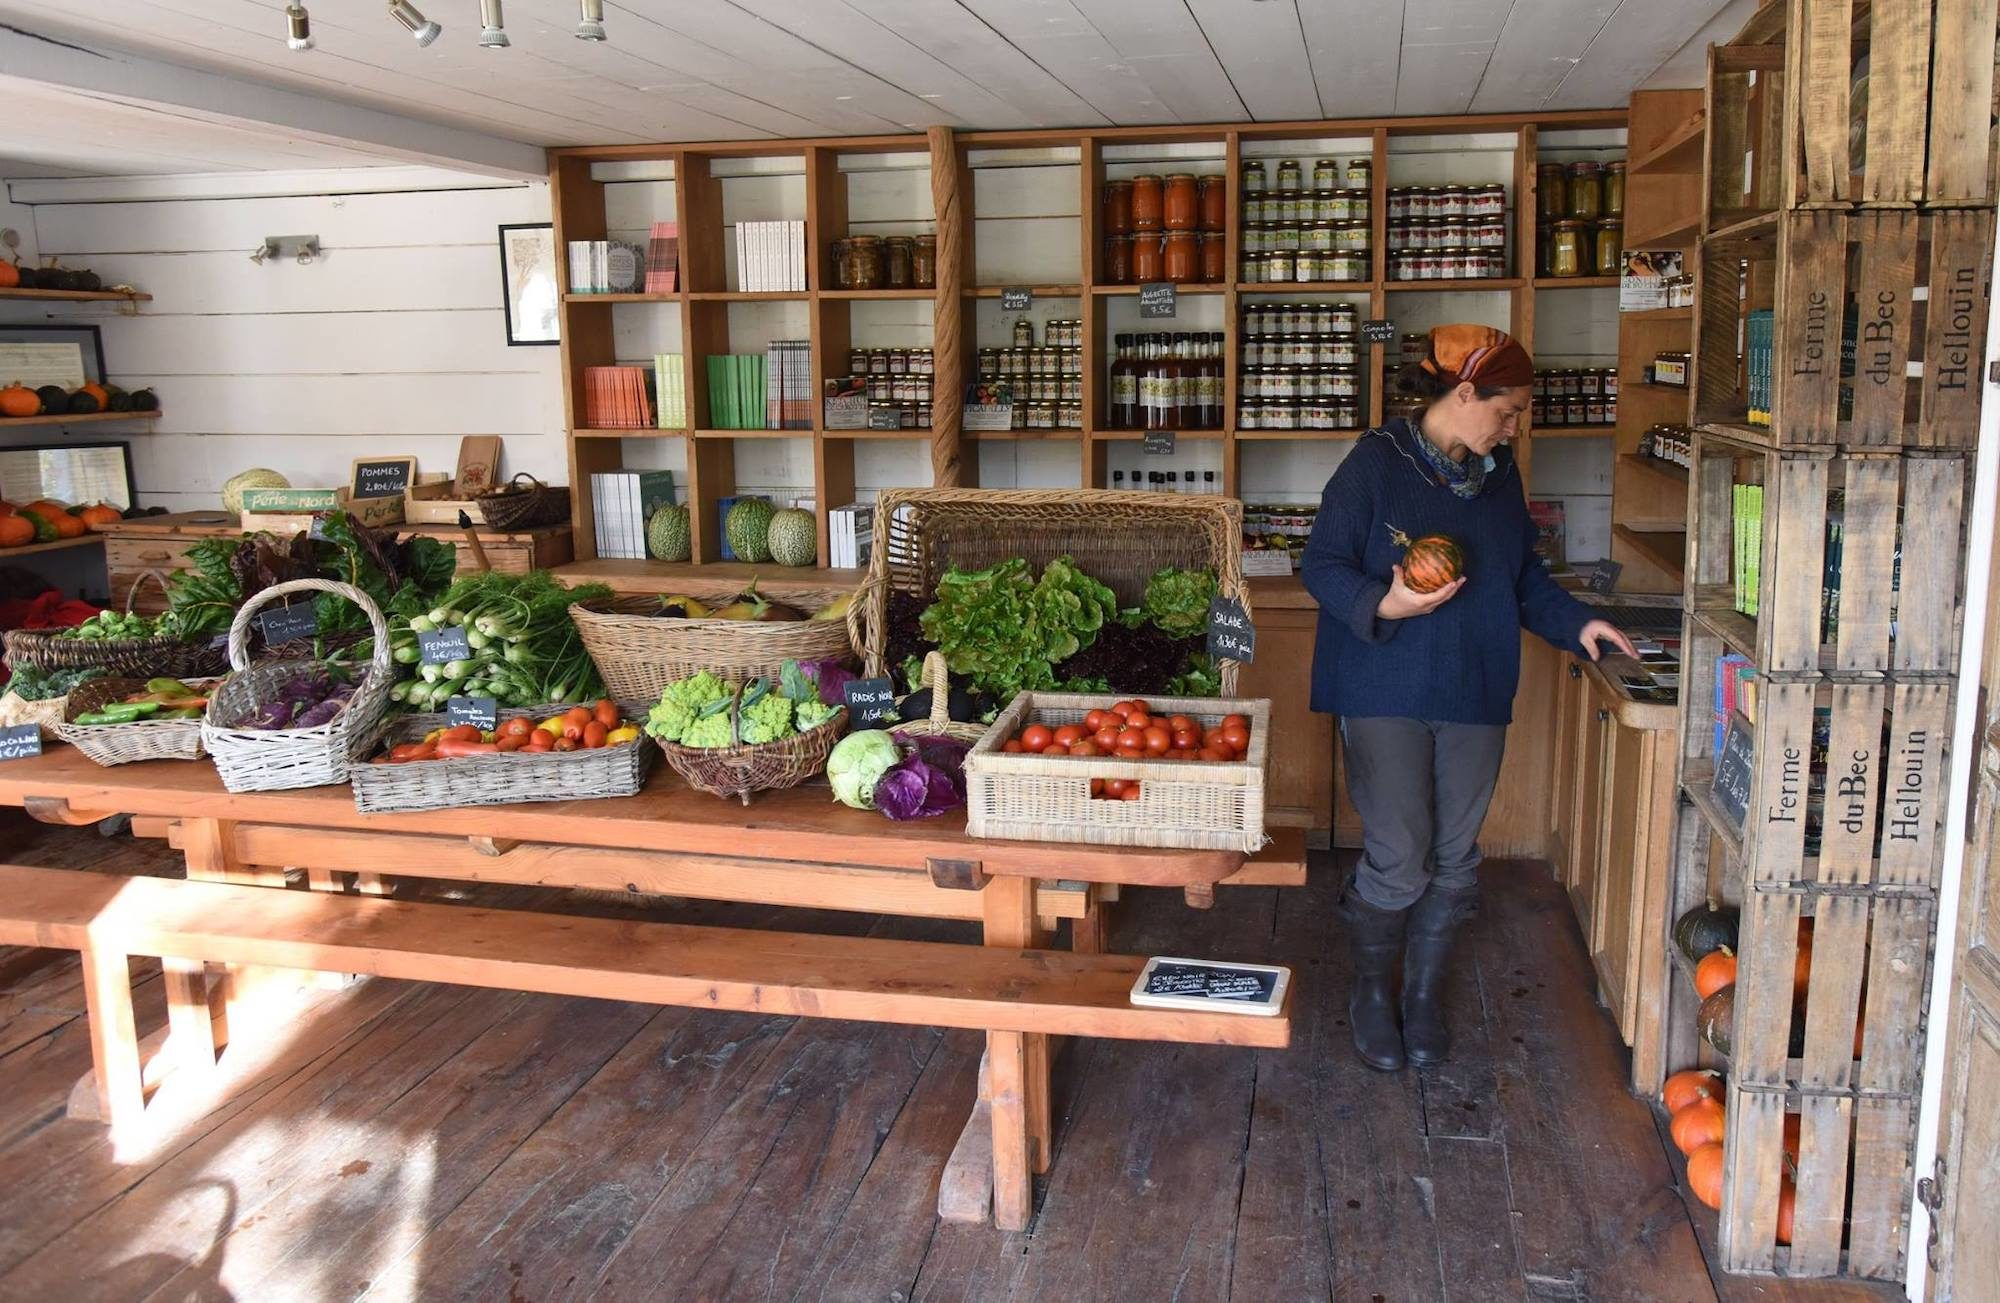 The Bec Hellouin farm shop, which grows the vegetables it grows according to the principles of permaculture.